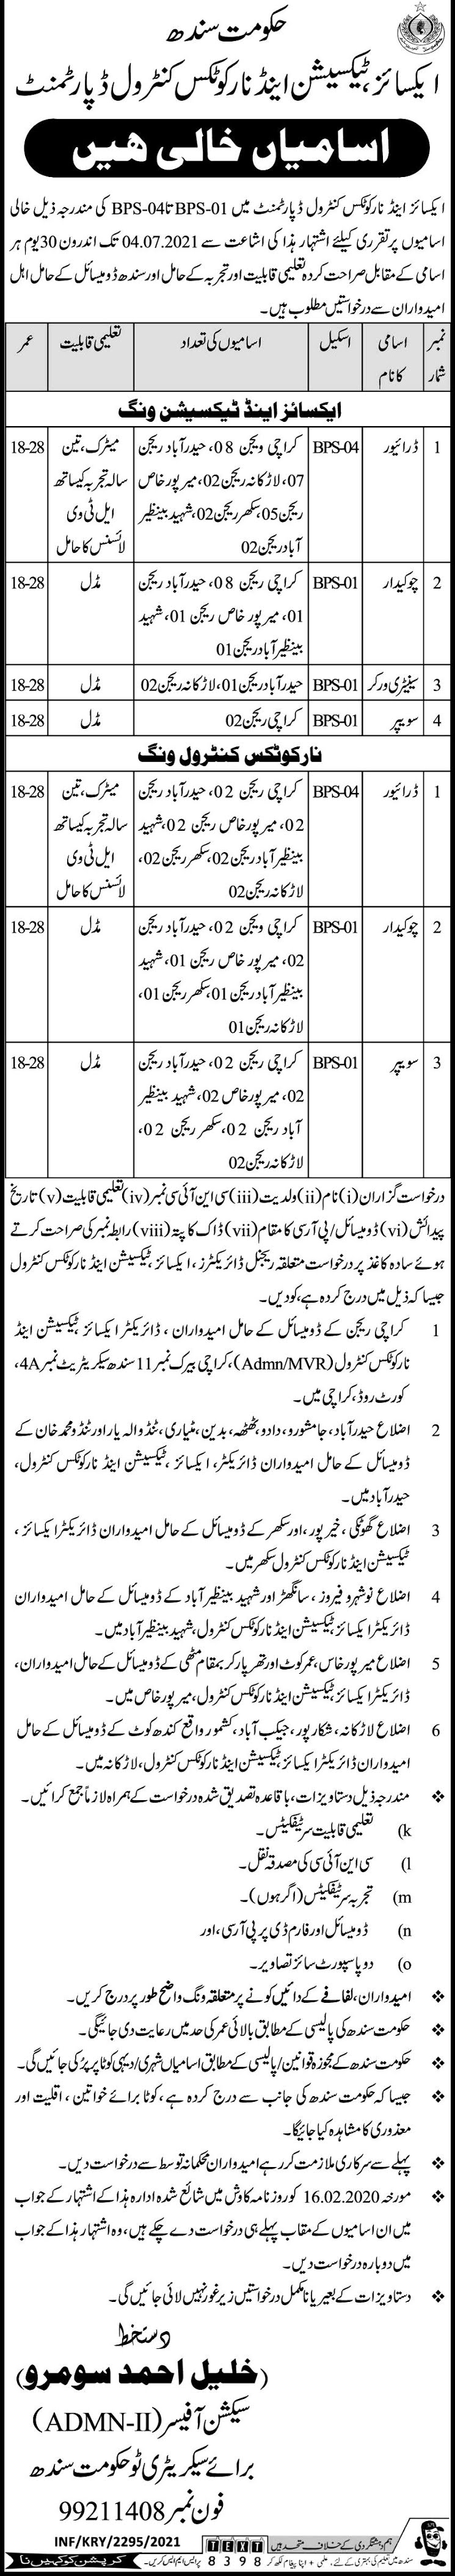 Latest Jobs in  Excise Taxation & Narcotics Control Department June 2021